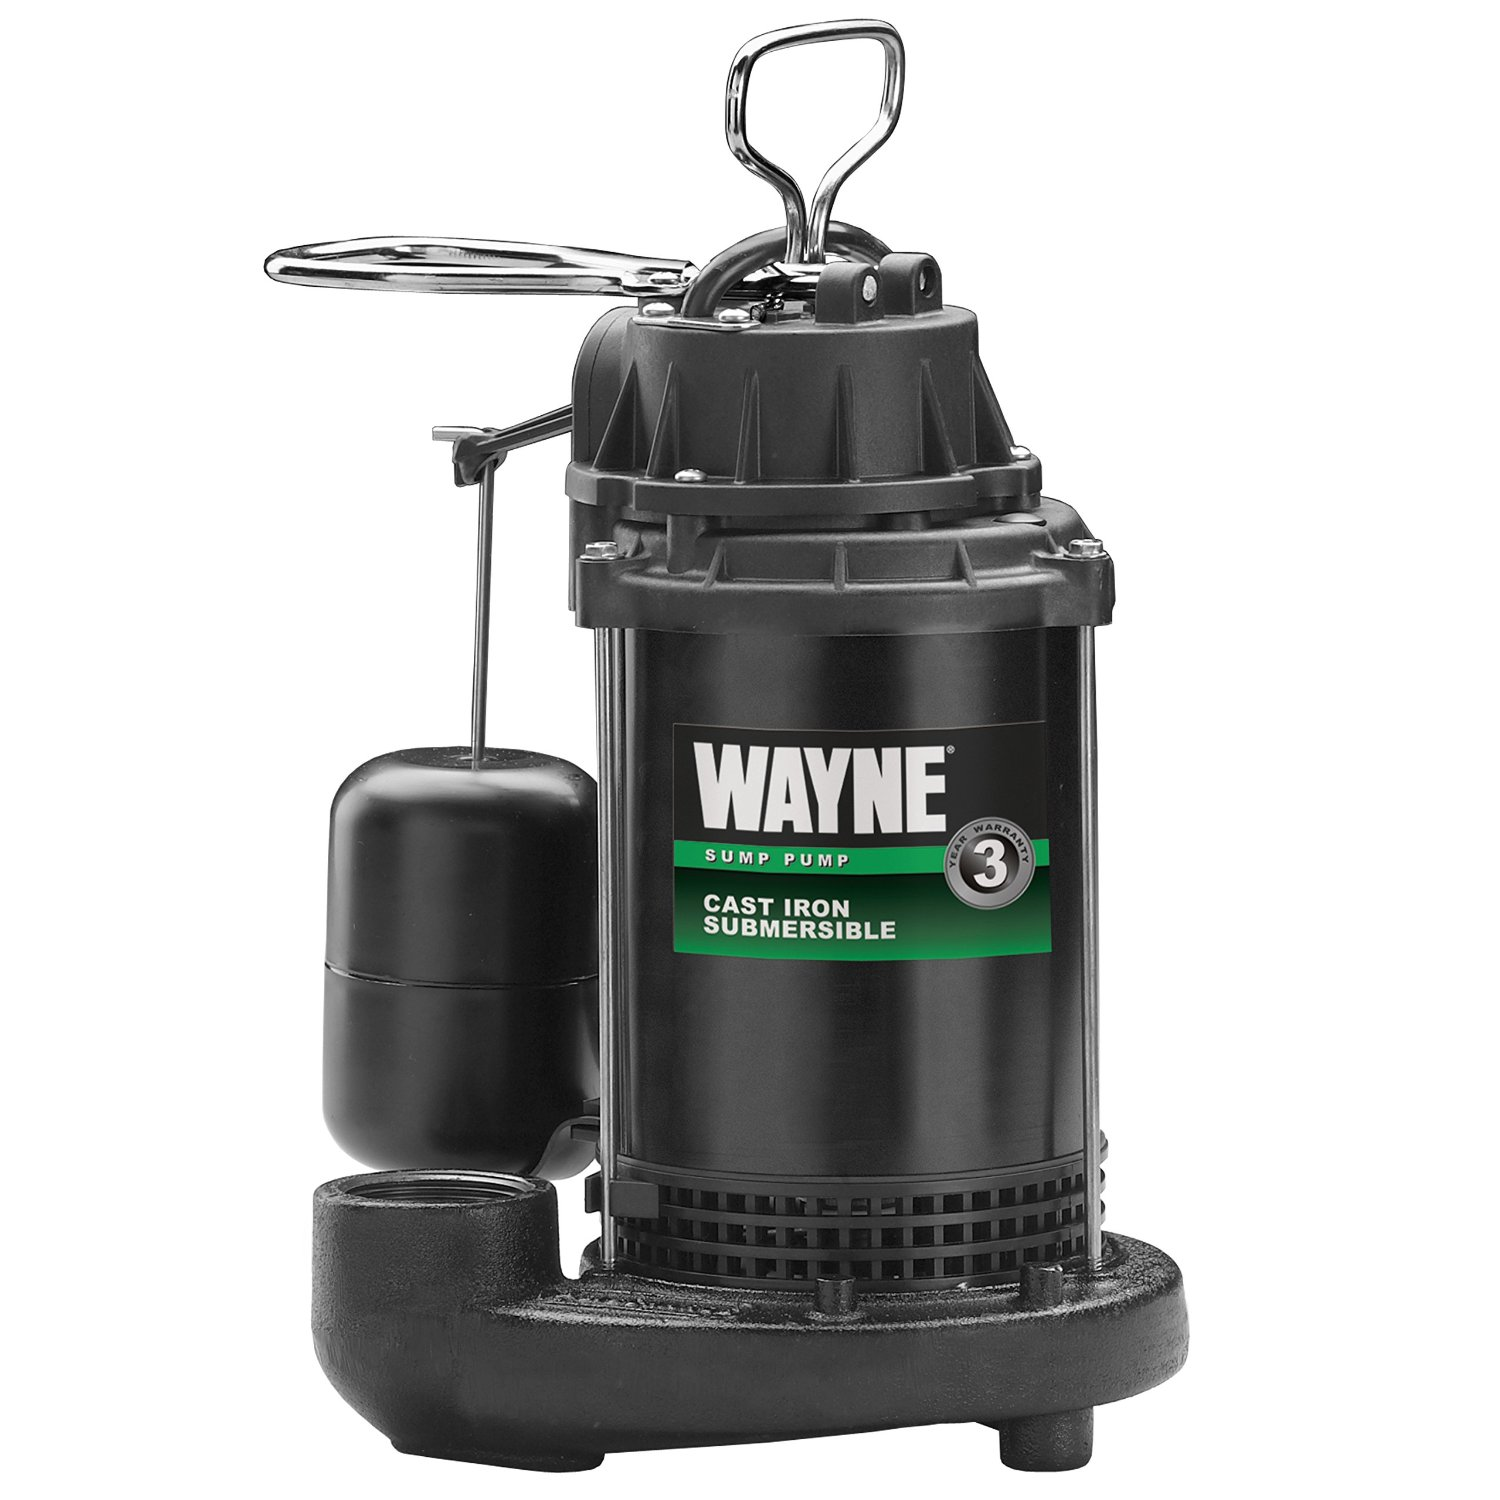 Wayne Submersible Cast Iron Stainless Steel Sump Pump – Available in ¾ HP or 1 HP